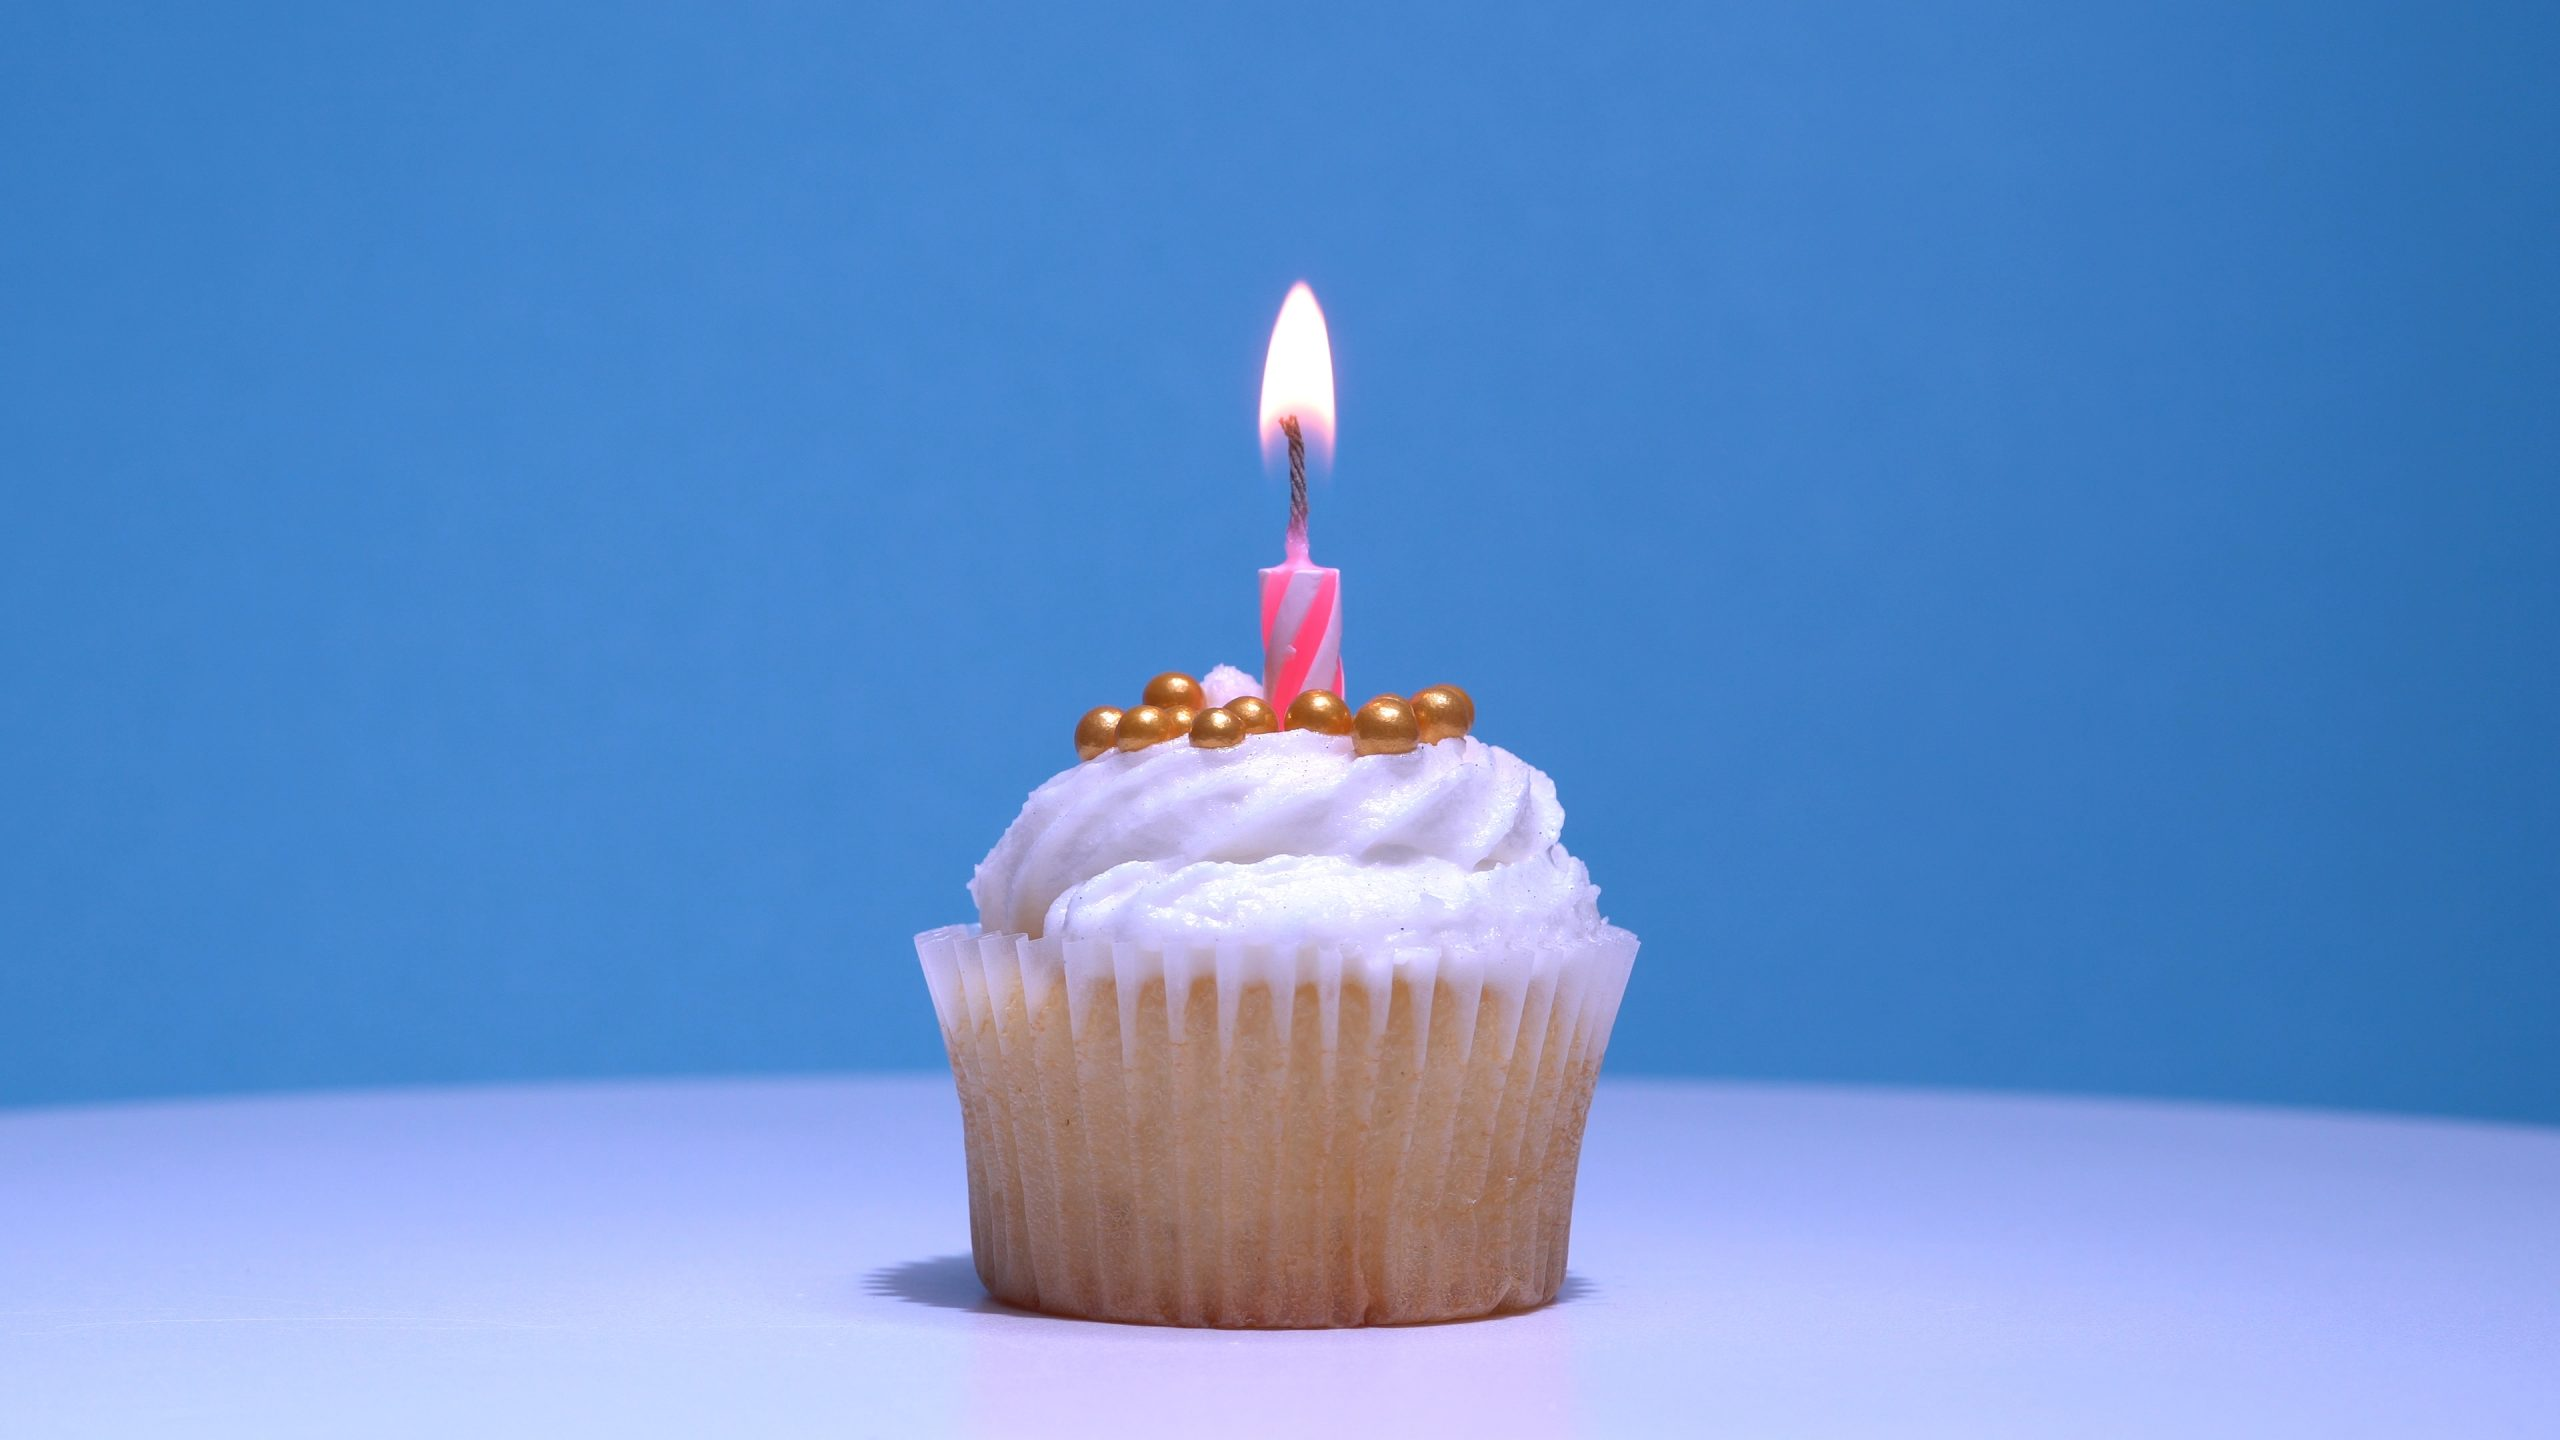 Cupcake,With,Single,Birthday,Candle,Burning,And,Sugar,Sprinkles,Icing